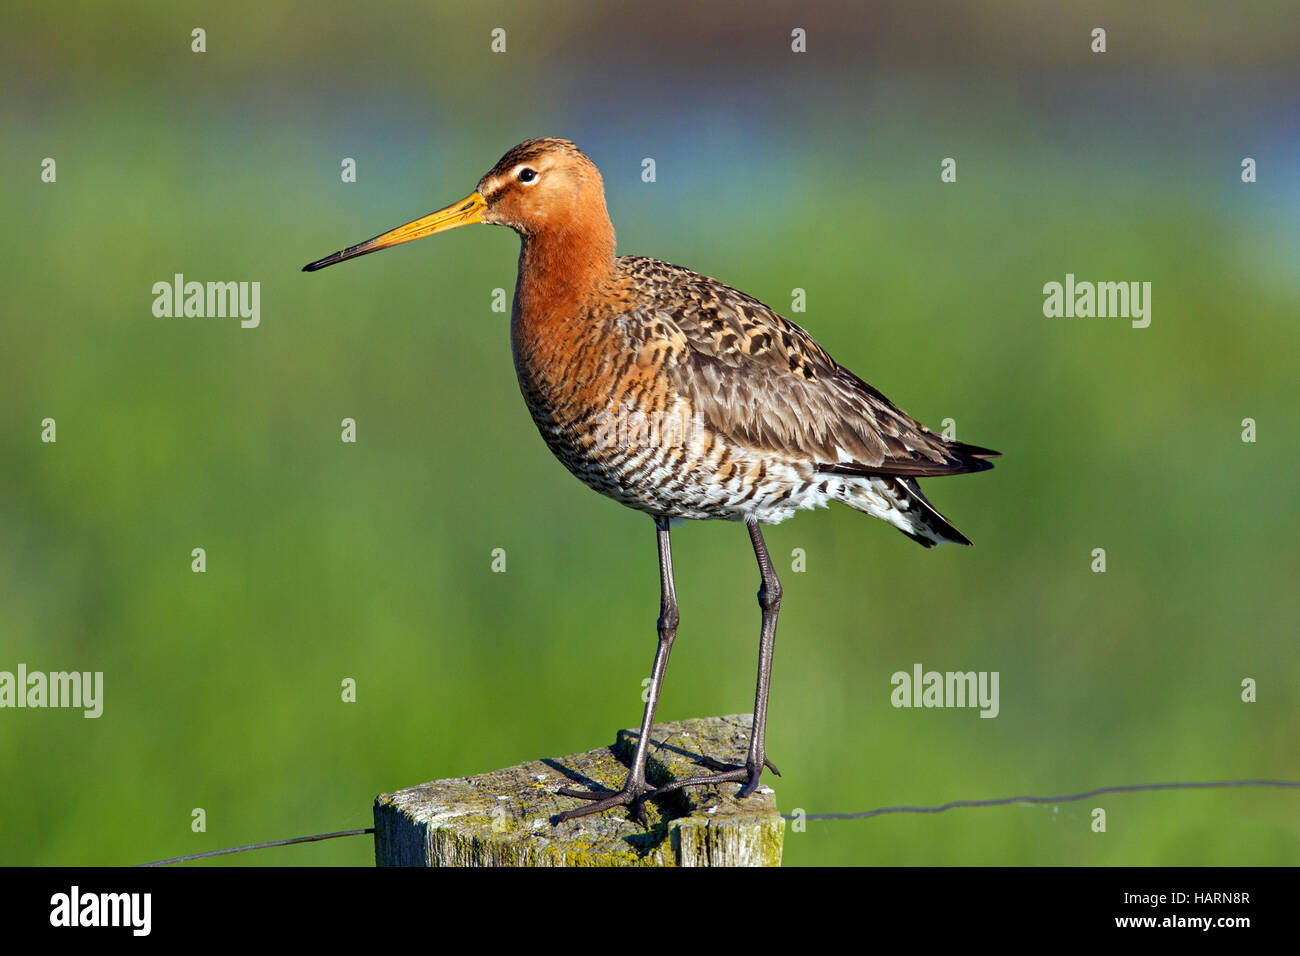 Black-tailed godwit (Limosa limosa) male perched on fence post in meadow in spring - Stock Image